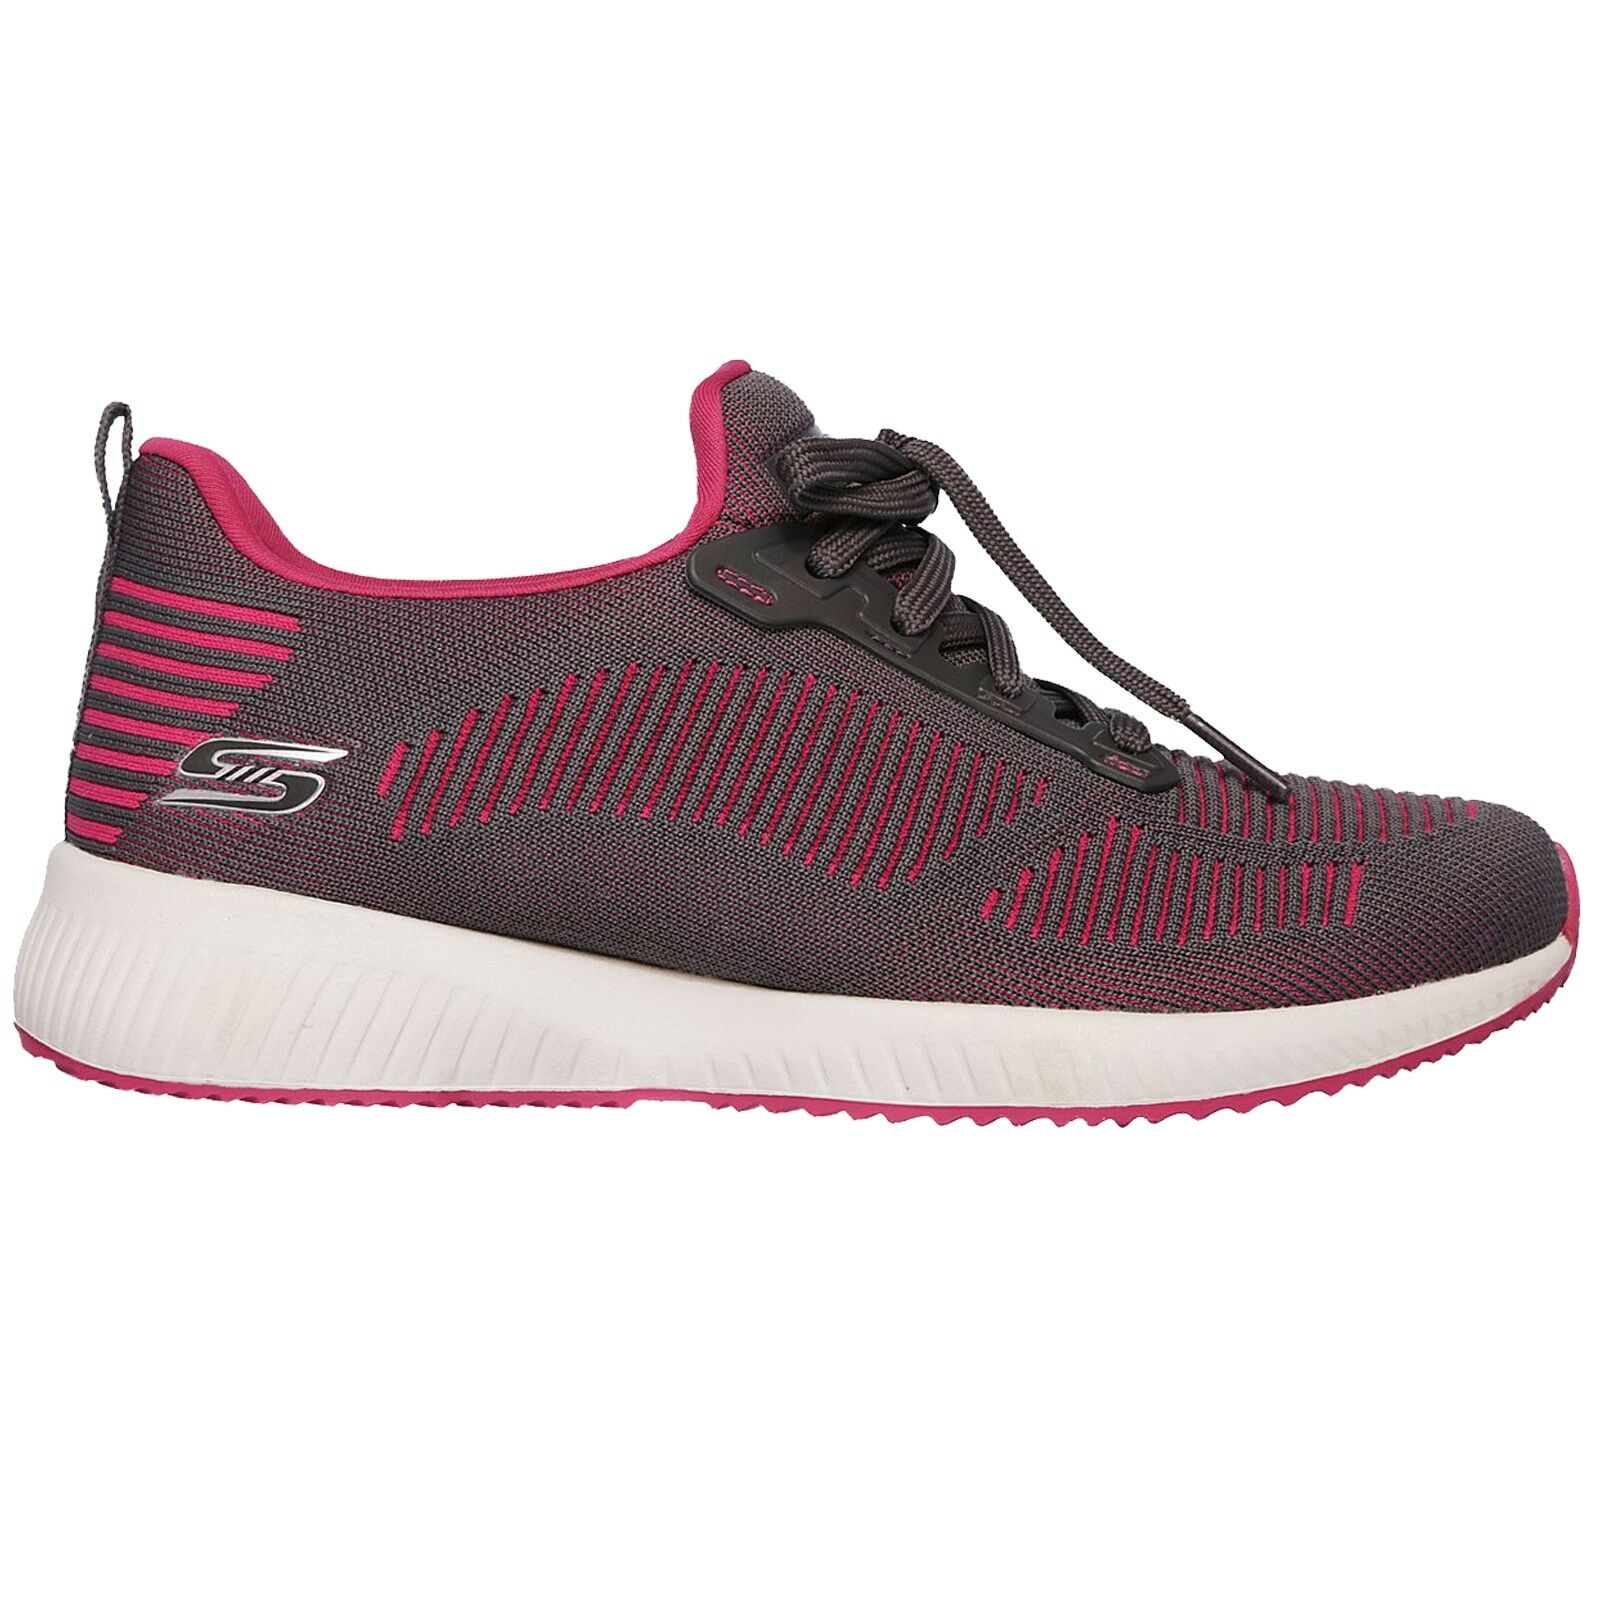 Skechers Bobs Squad Trainers US 7 CM 24 REF 3404